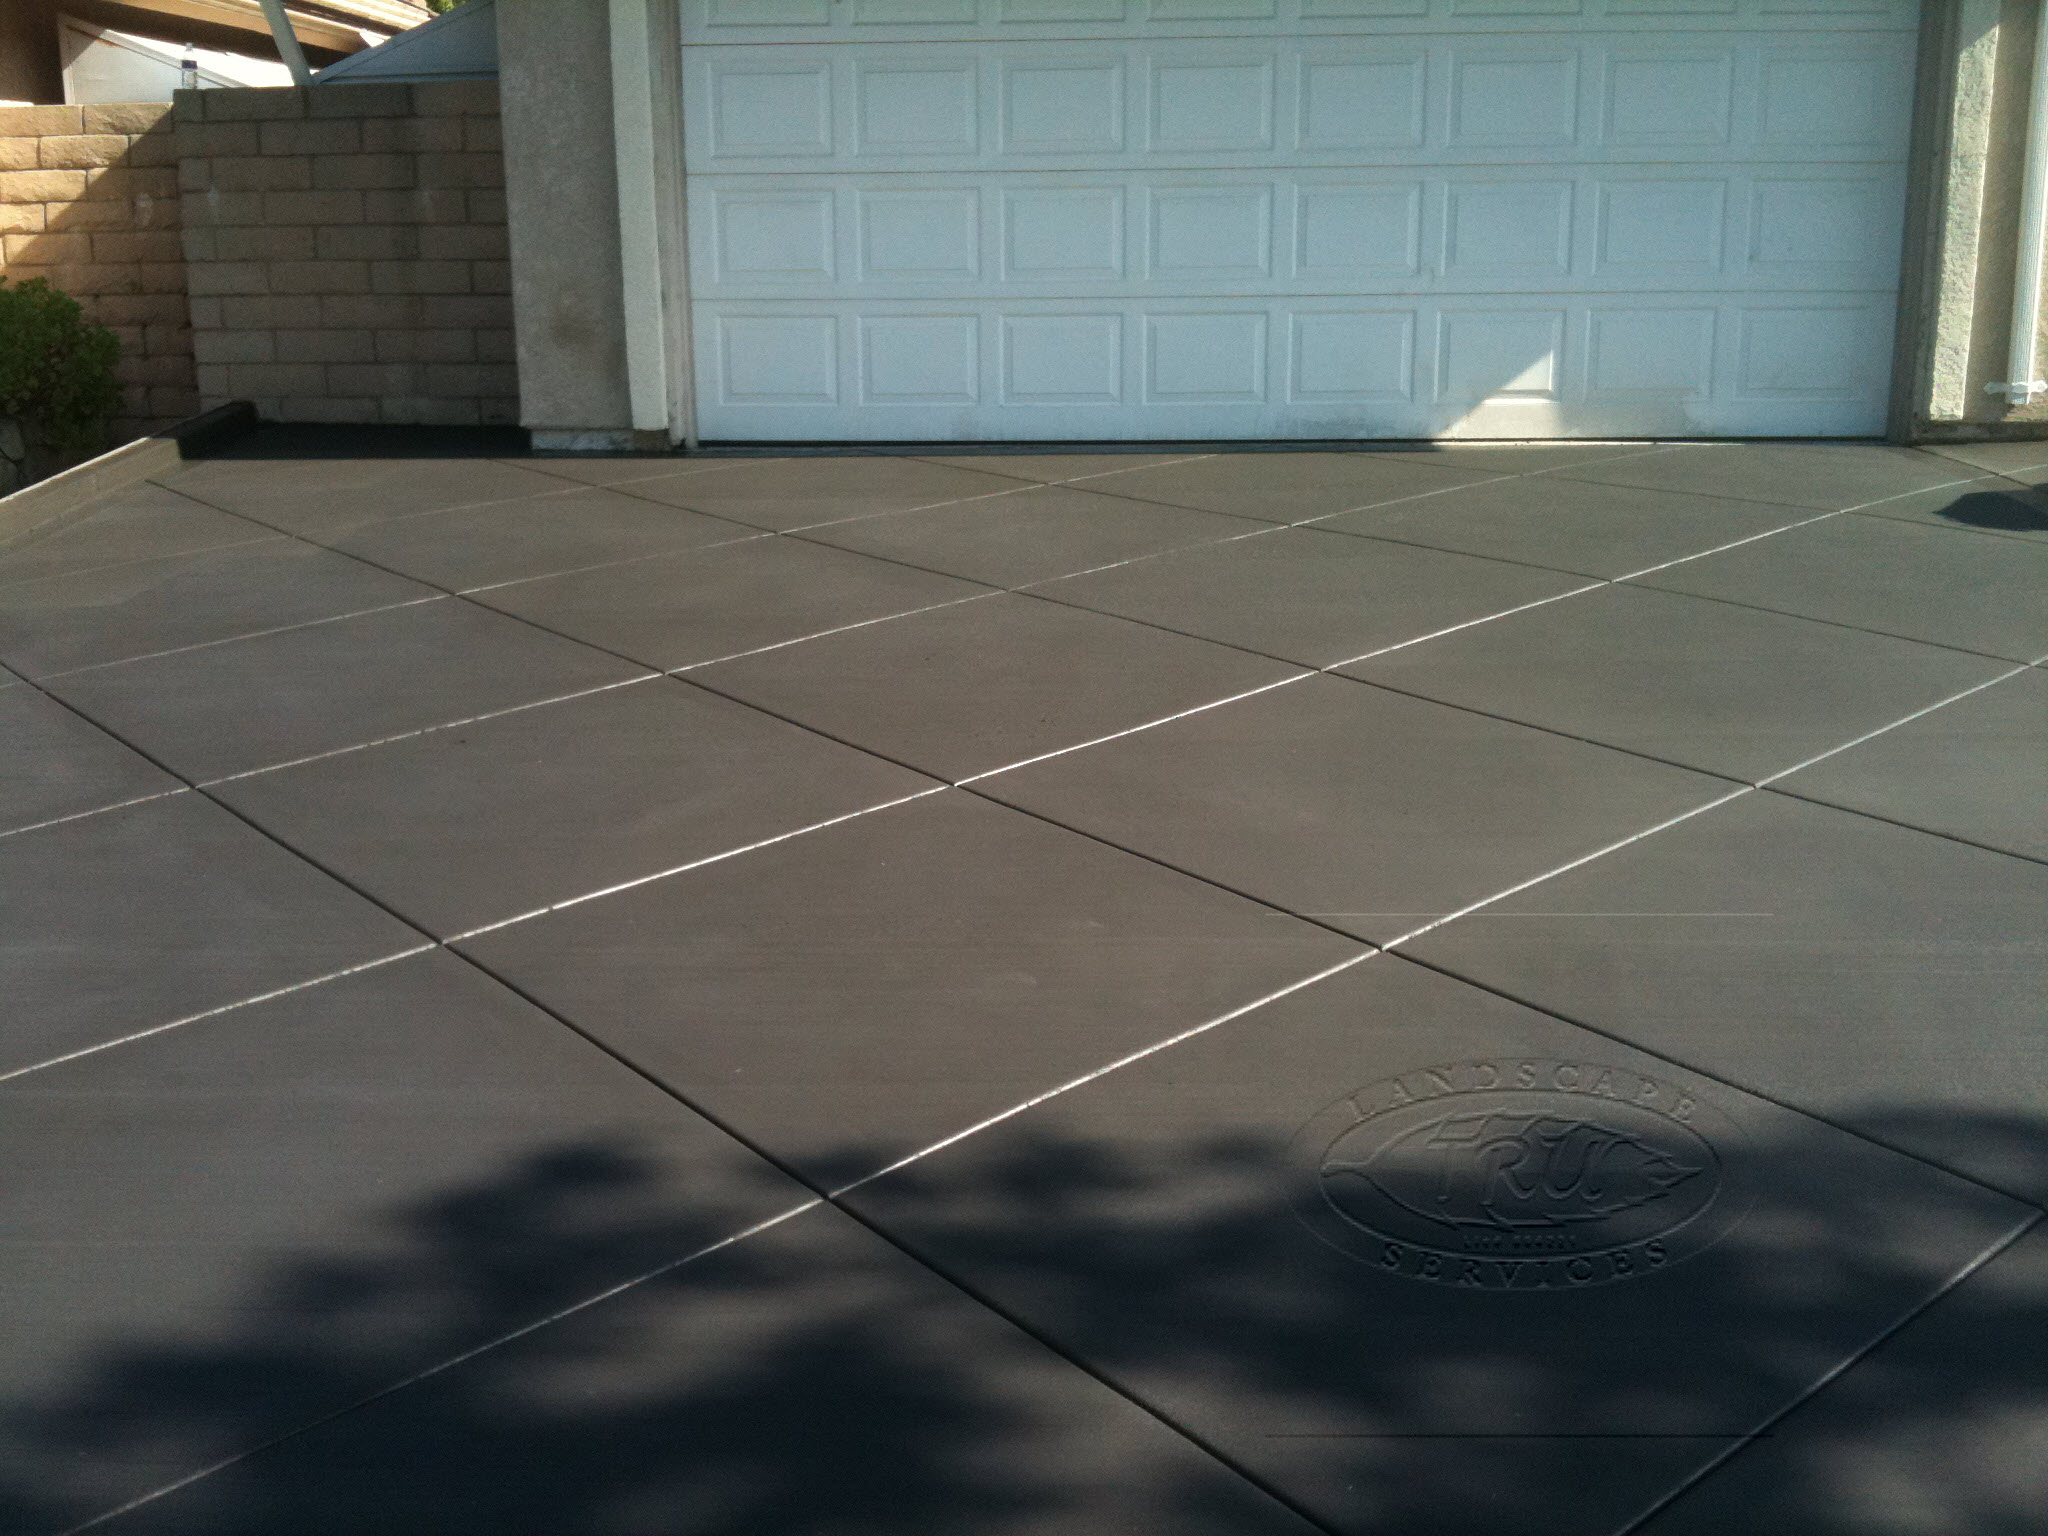 Diamond Patterned Cut Concrete